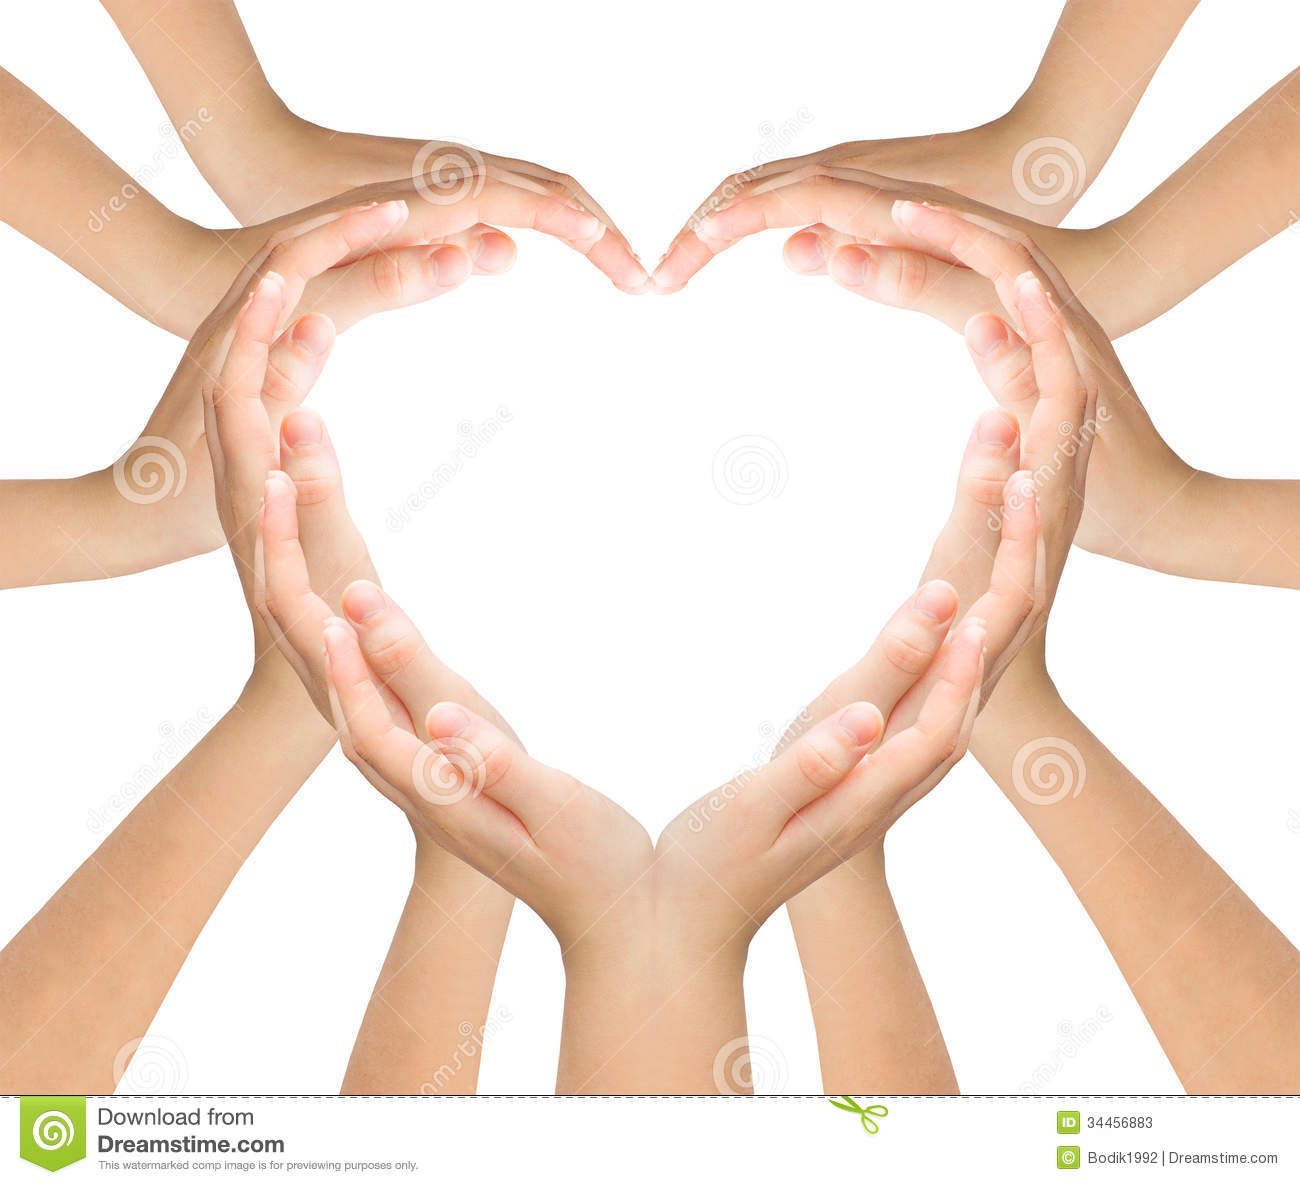 Uncategorized Hands In A Heart hands make heart stock image of hand health life 34456883 heart